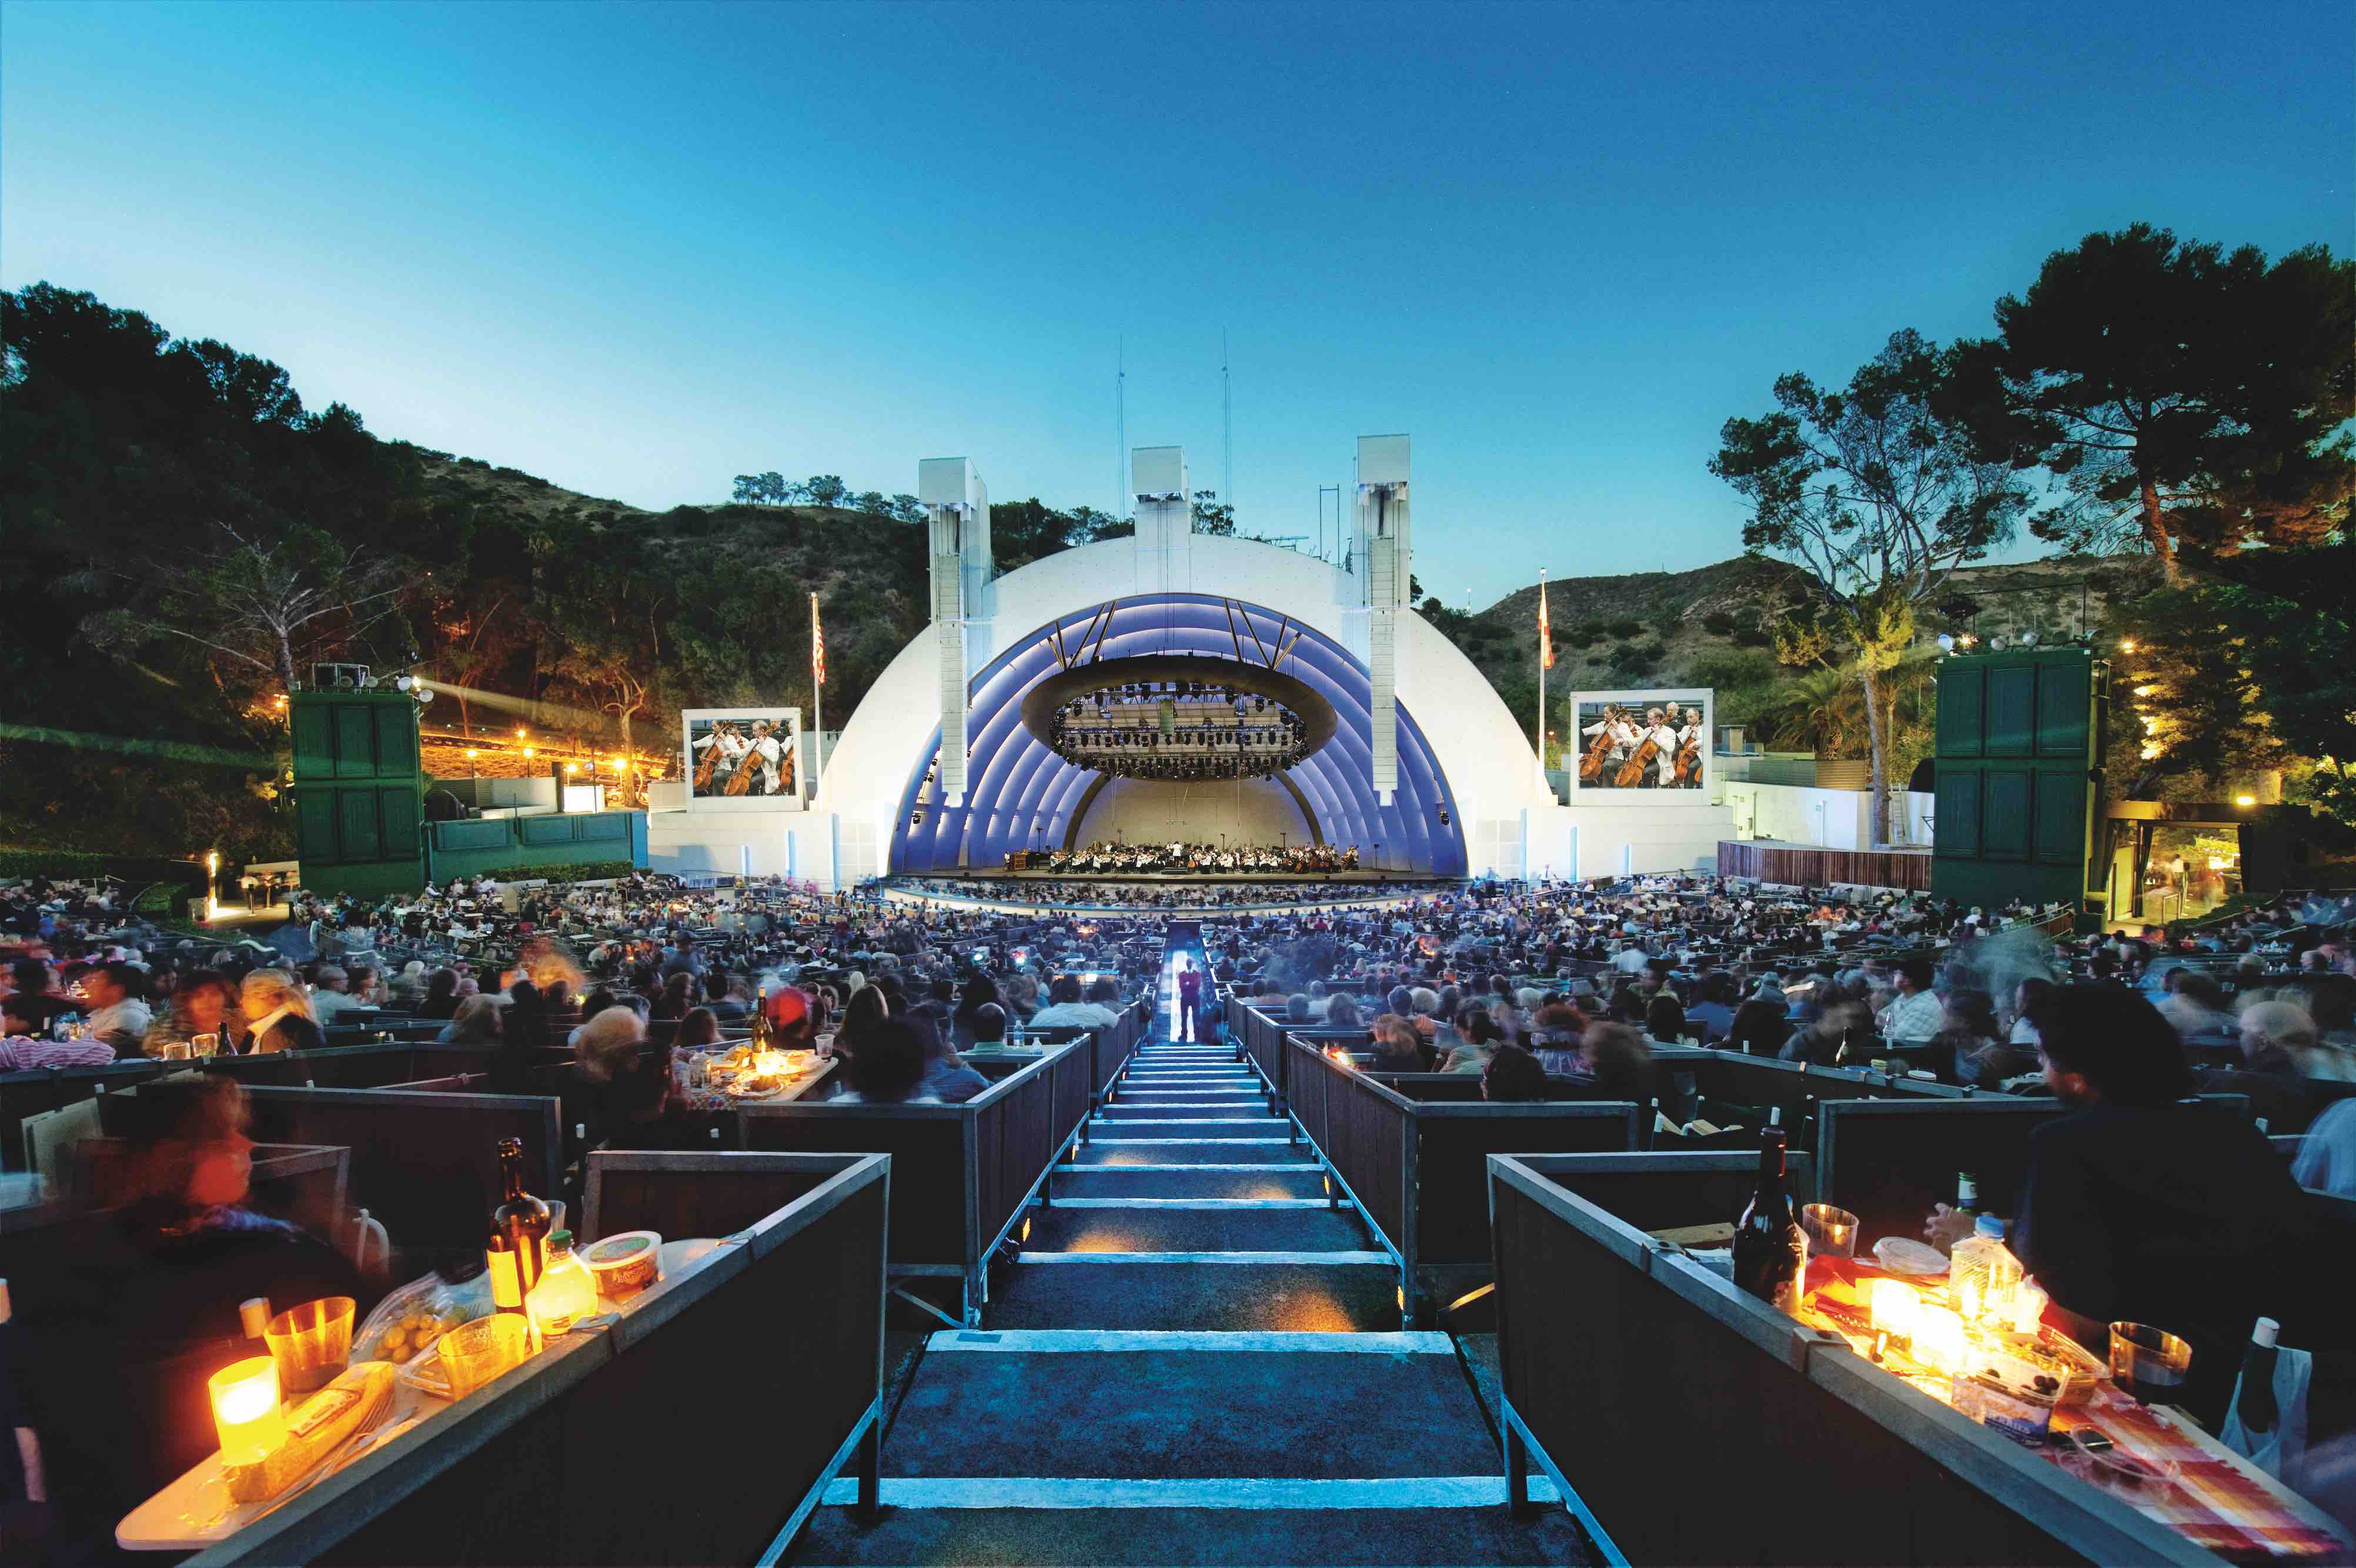 THE HOLLYWOOD BOWL in 2011 (Image courtesy of Adam Latham)